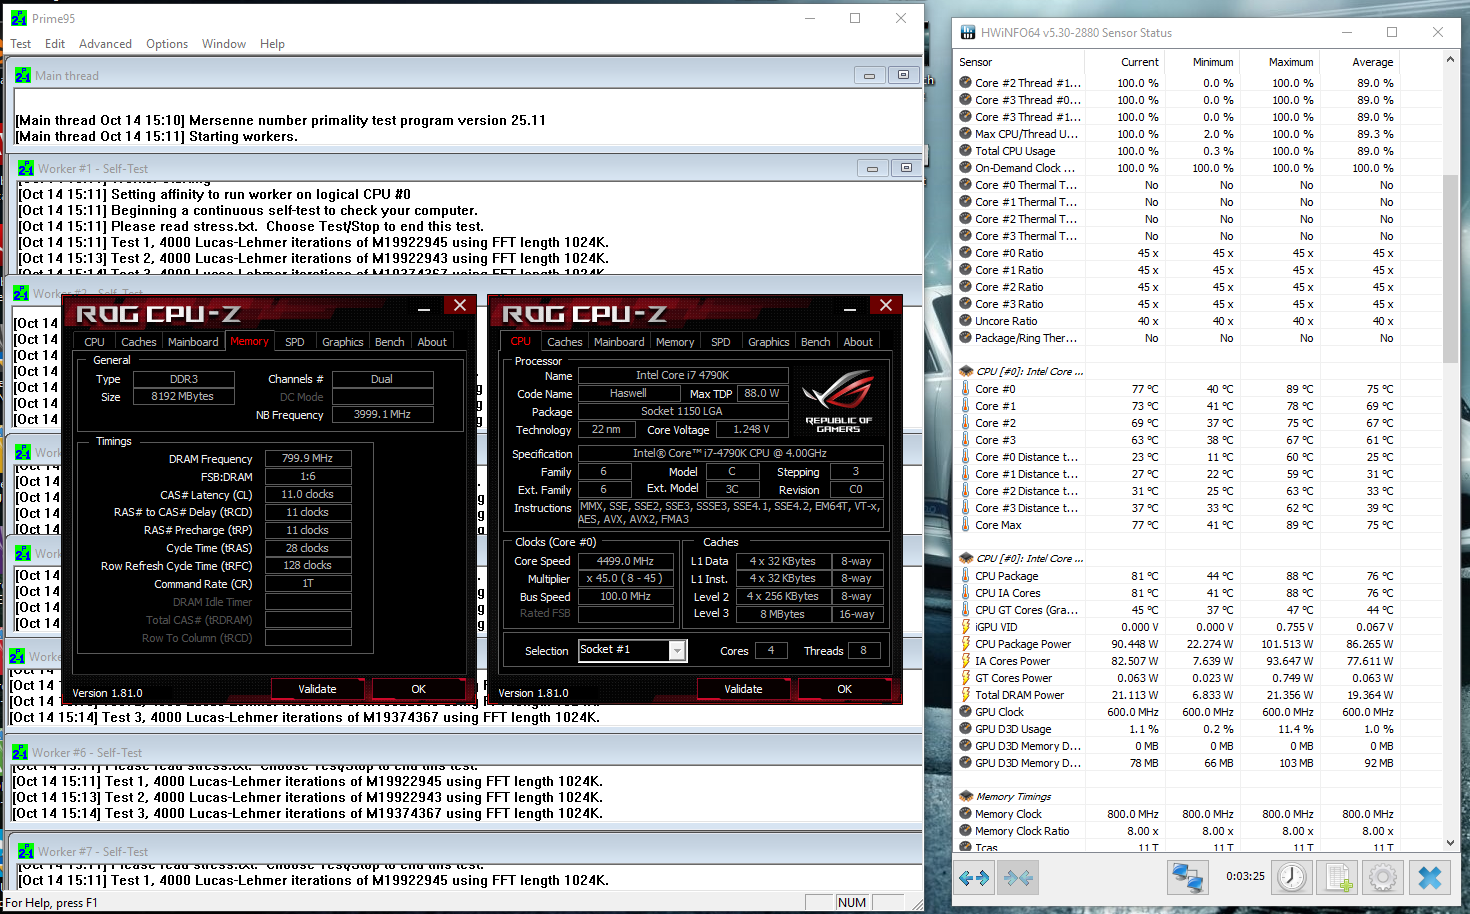 Intel Core i7 4790K reaching 90C, When overclocks  Need Help